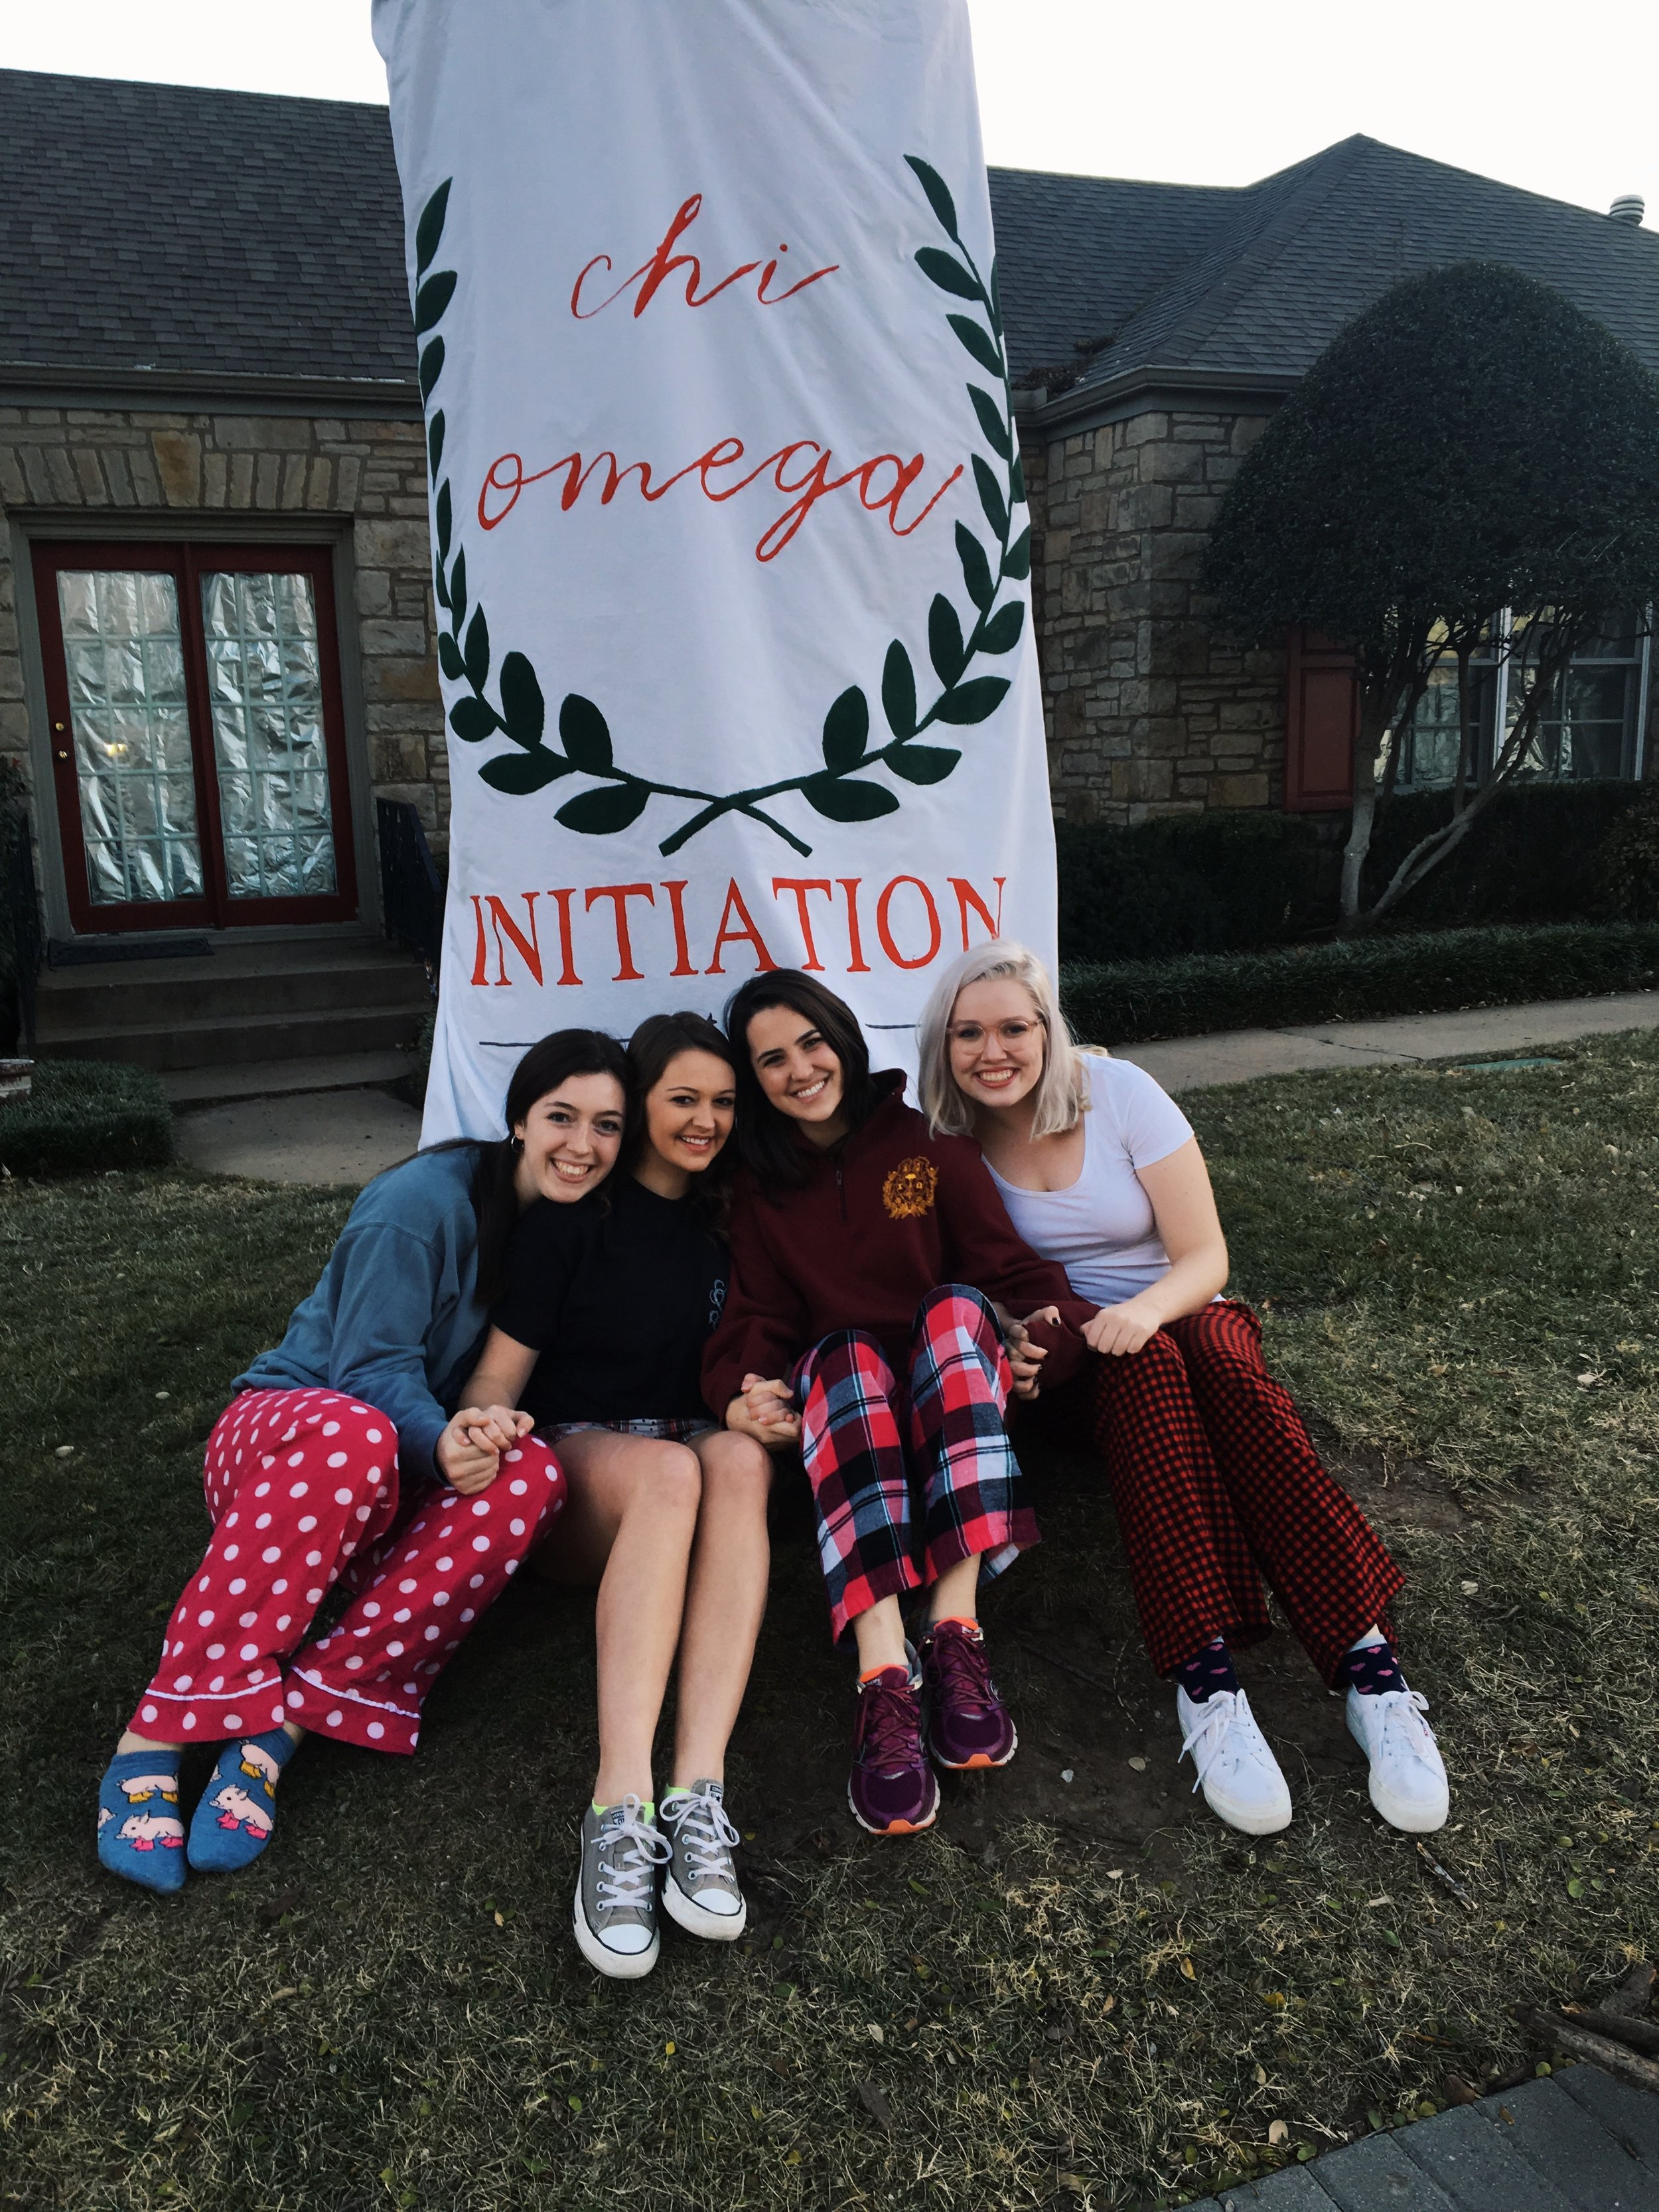 post-Initiation with some girls in my pledge class